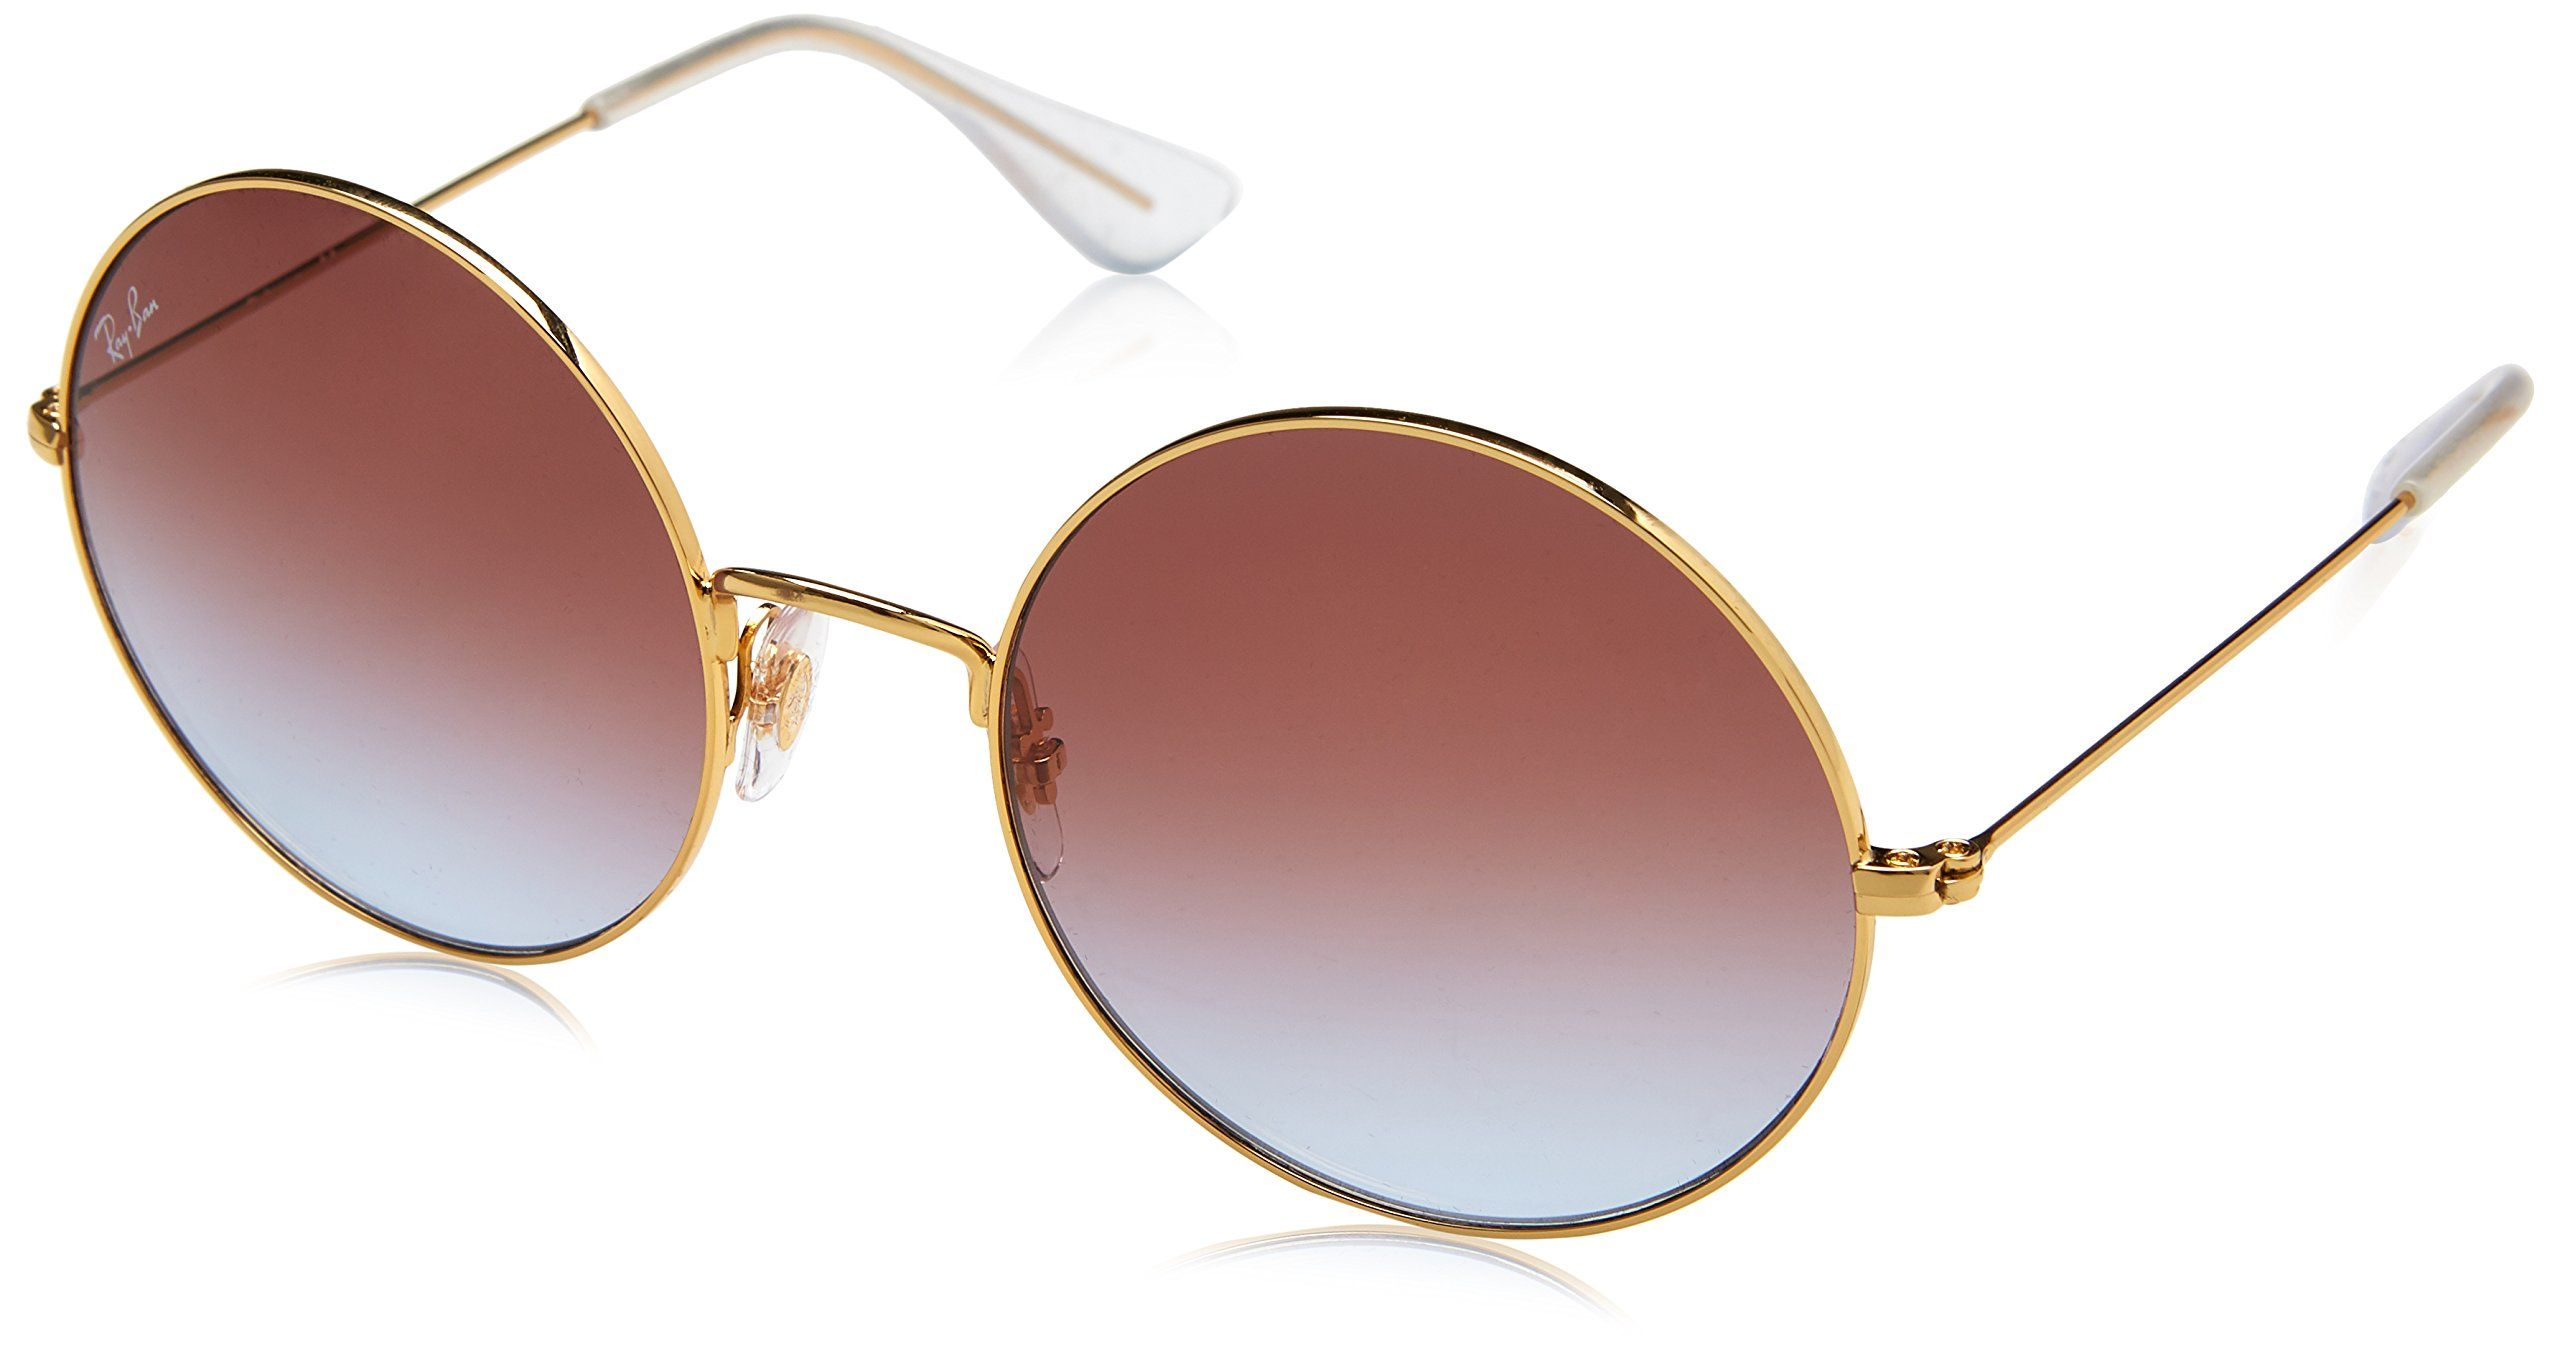 8d2ec9e1f43 Ray ban sunglasses · RayBan Womens JaJo Round Sunglasses Gold 55 mm --  Check out this great product.